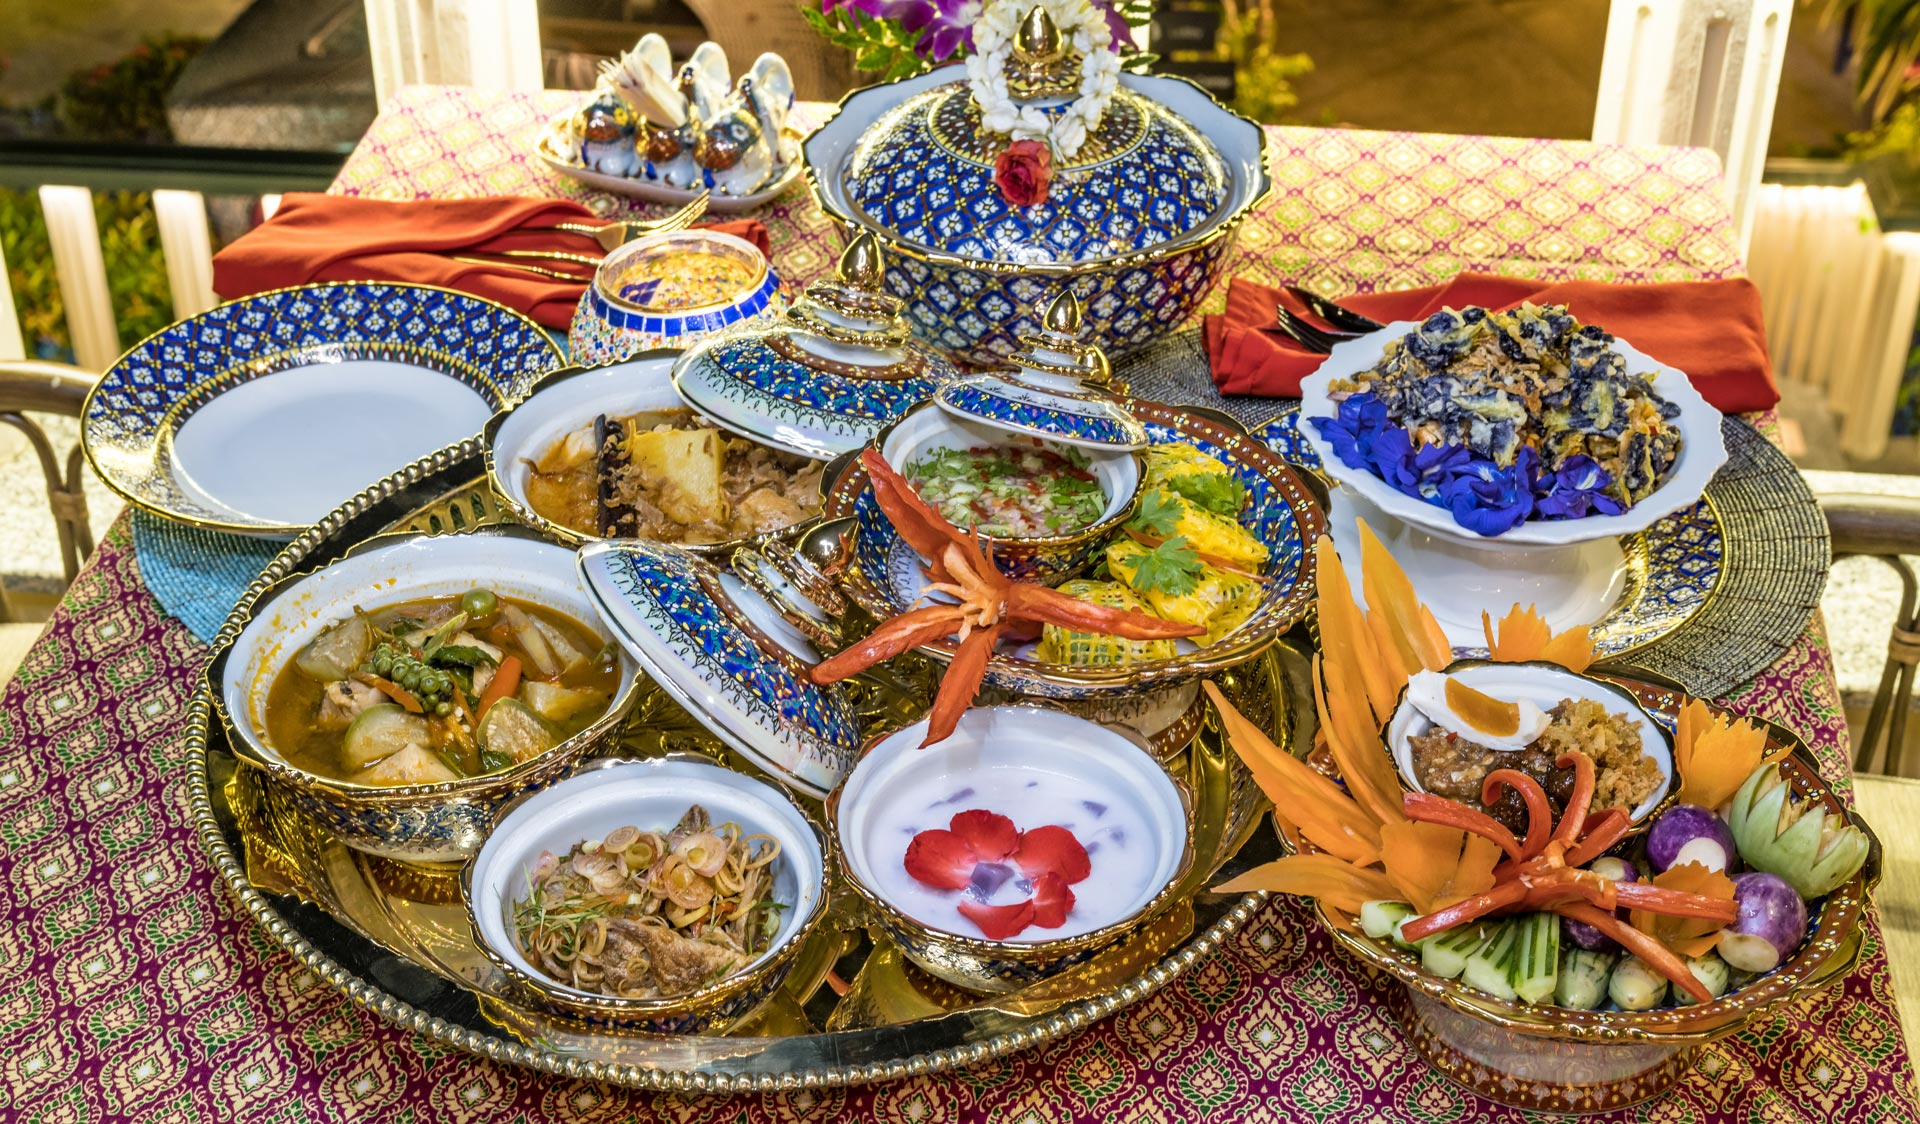 Royal Thai Cuisine, Mangosteen Restaurant And Wine Cellar. AUTHENTIC HOME-STYLE THAI CUISINE AND MEDITERRANEAN DELIGHTS WITH ASIAN HERBS AND SPICES, ORGANIC, FRESH AND HEALTHY!